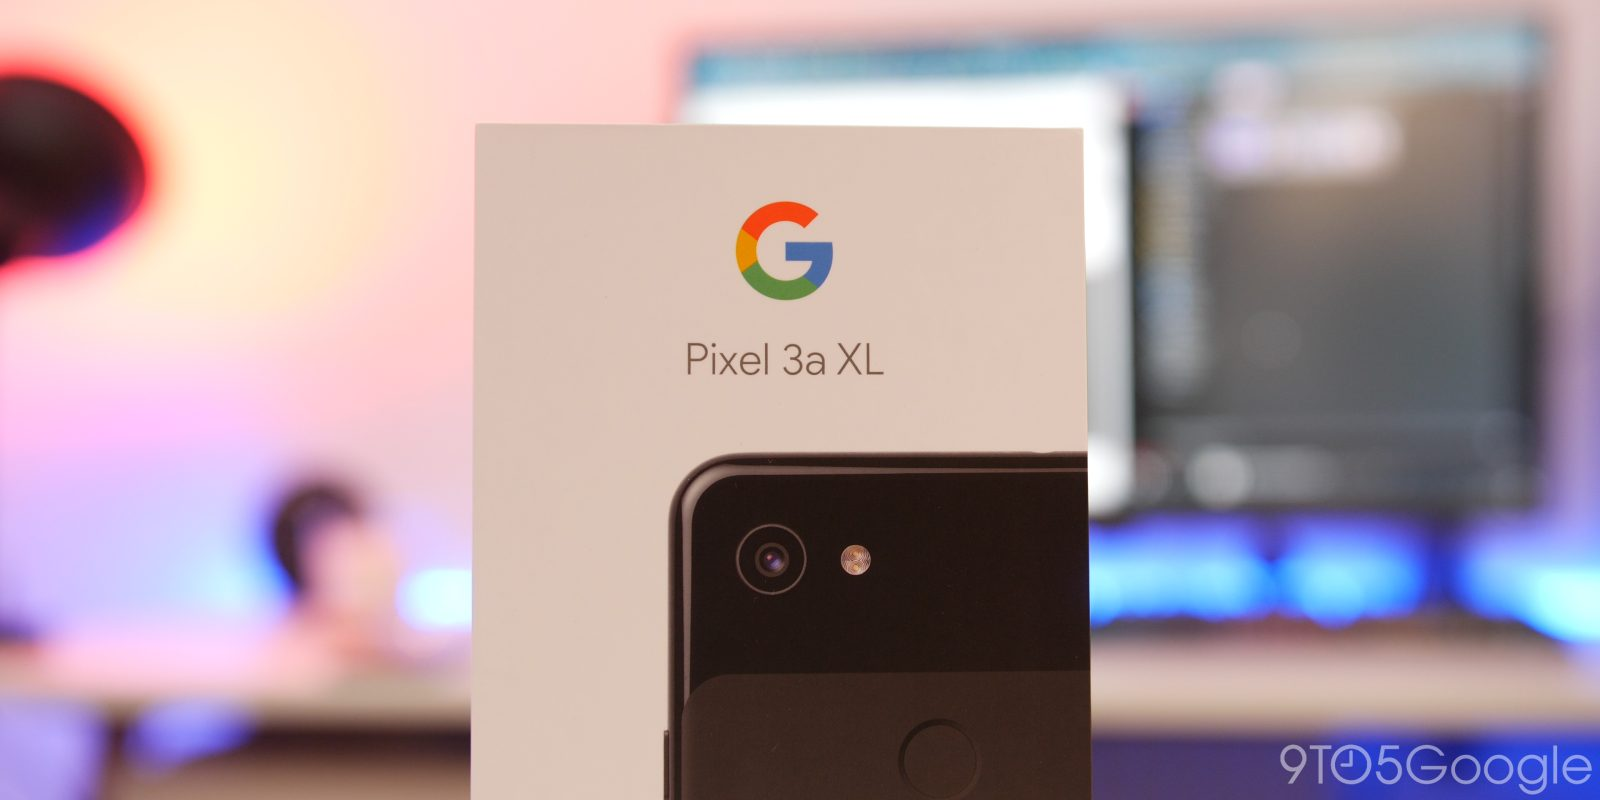 Top Stories: Pixel 3a, Google Fi mishap, Android Q Beta 3 - 9to5Google